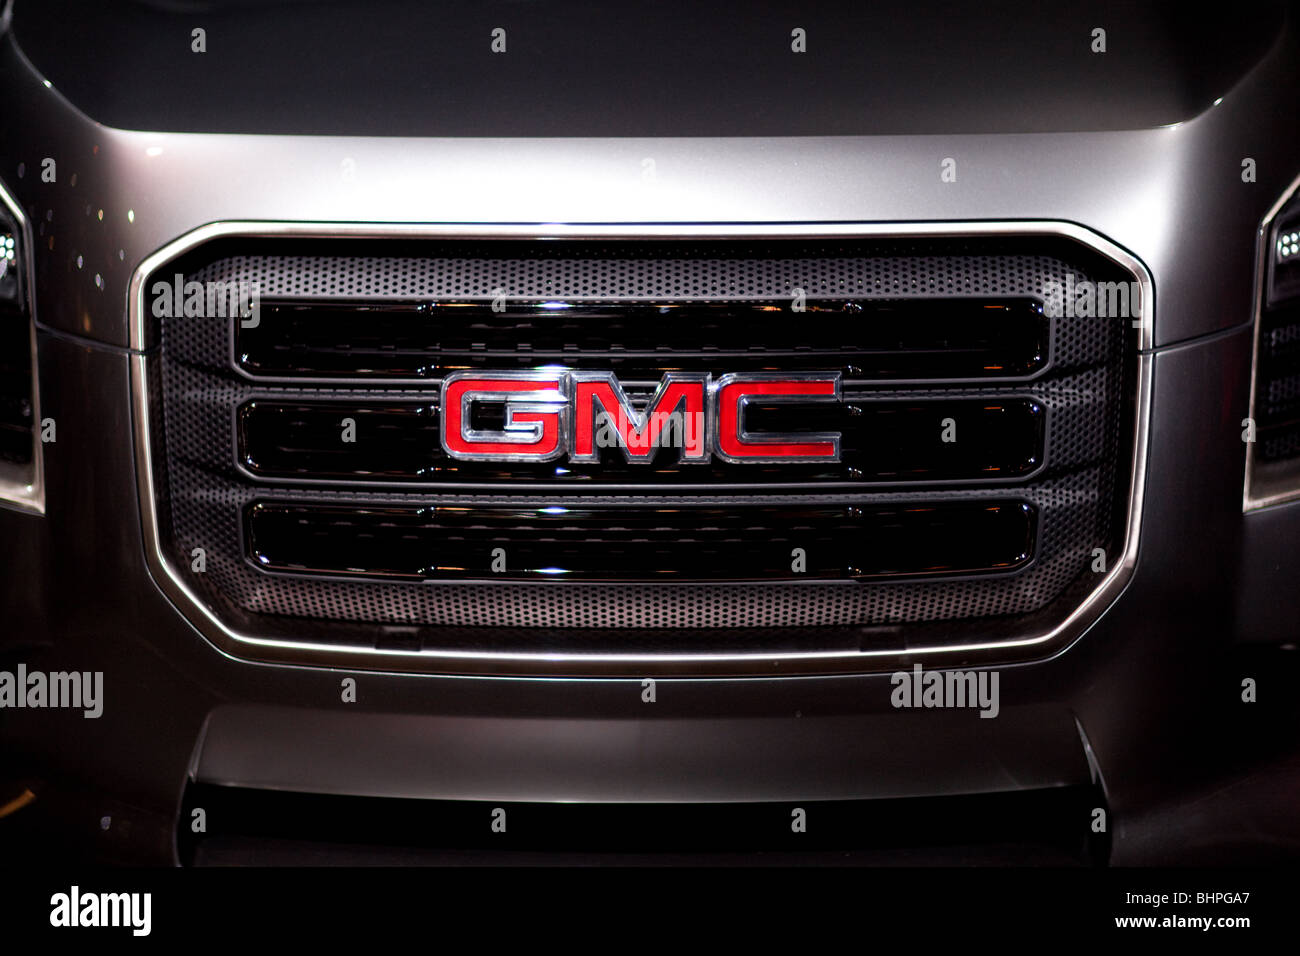 GMC Grille - Stock Image